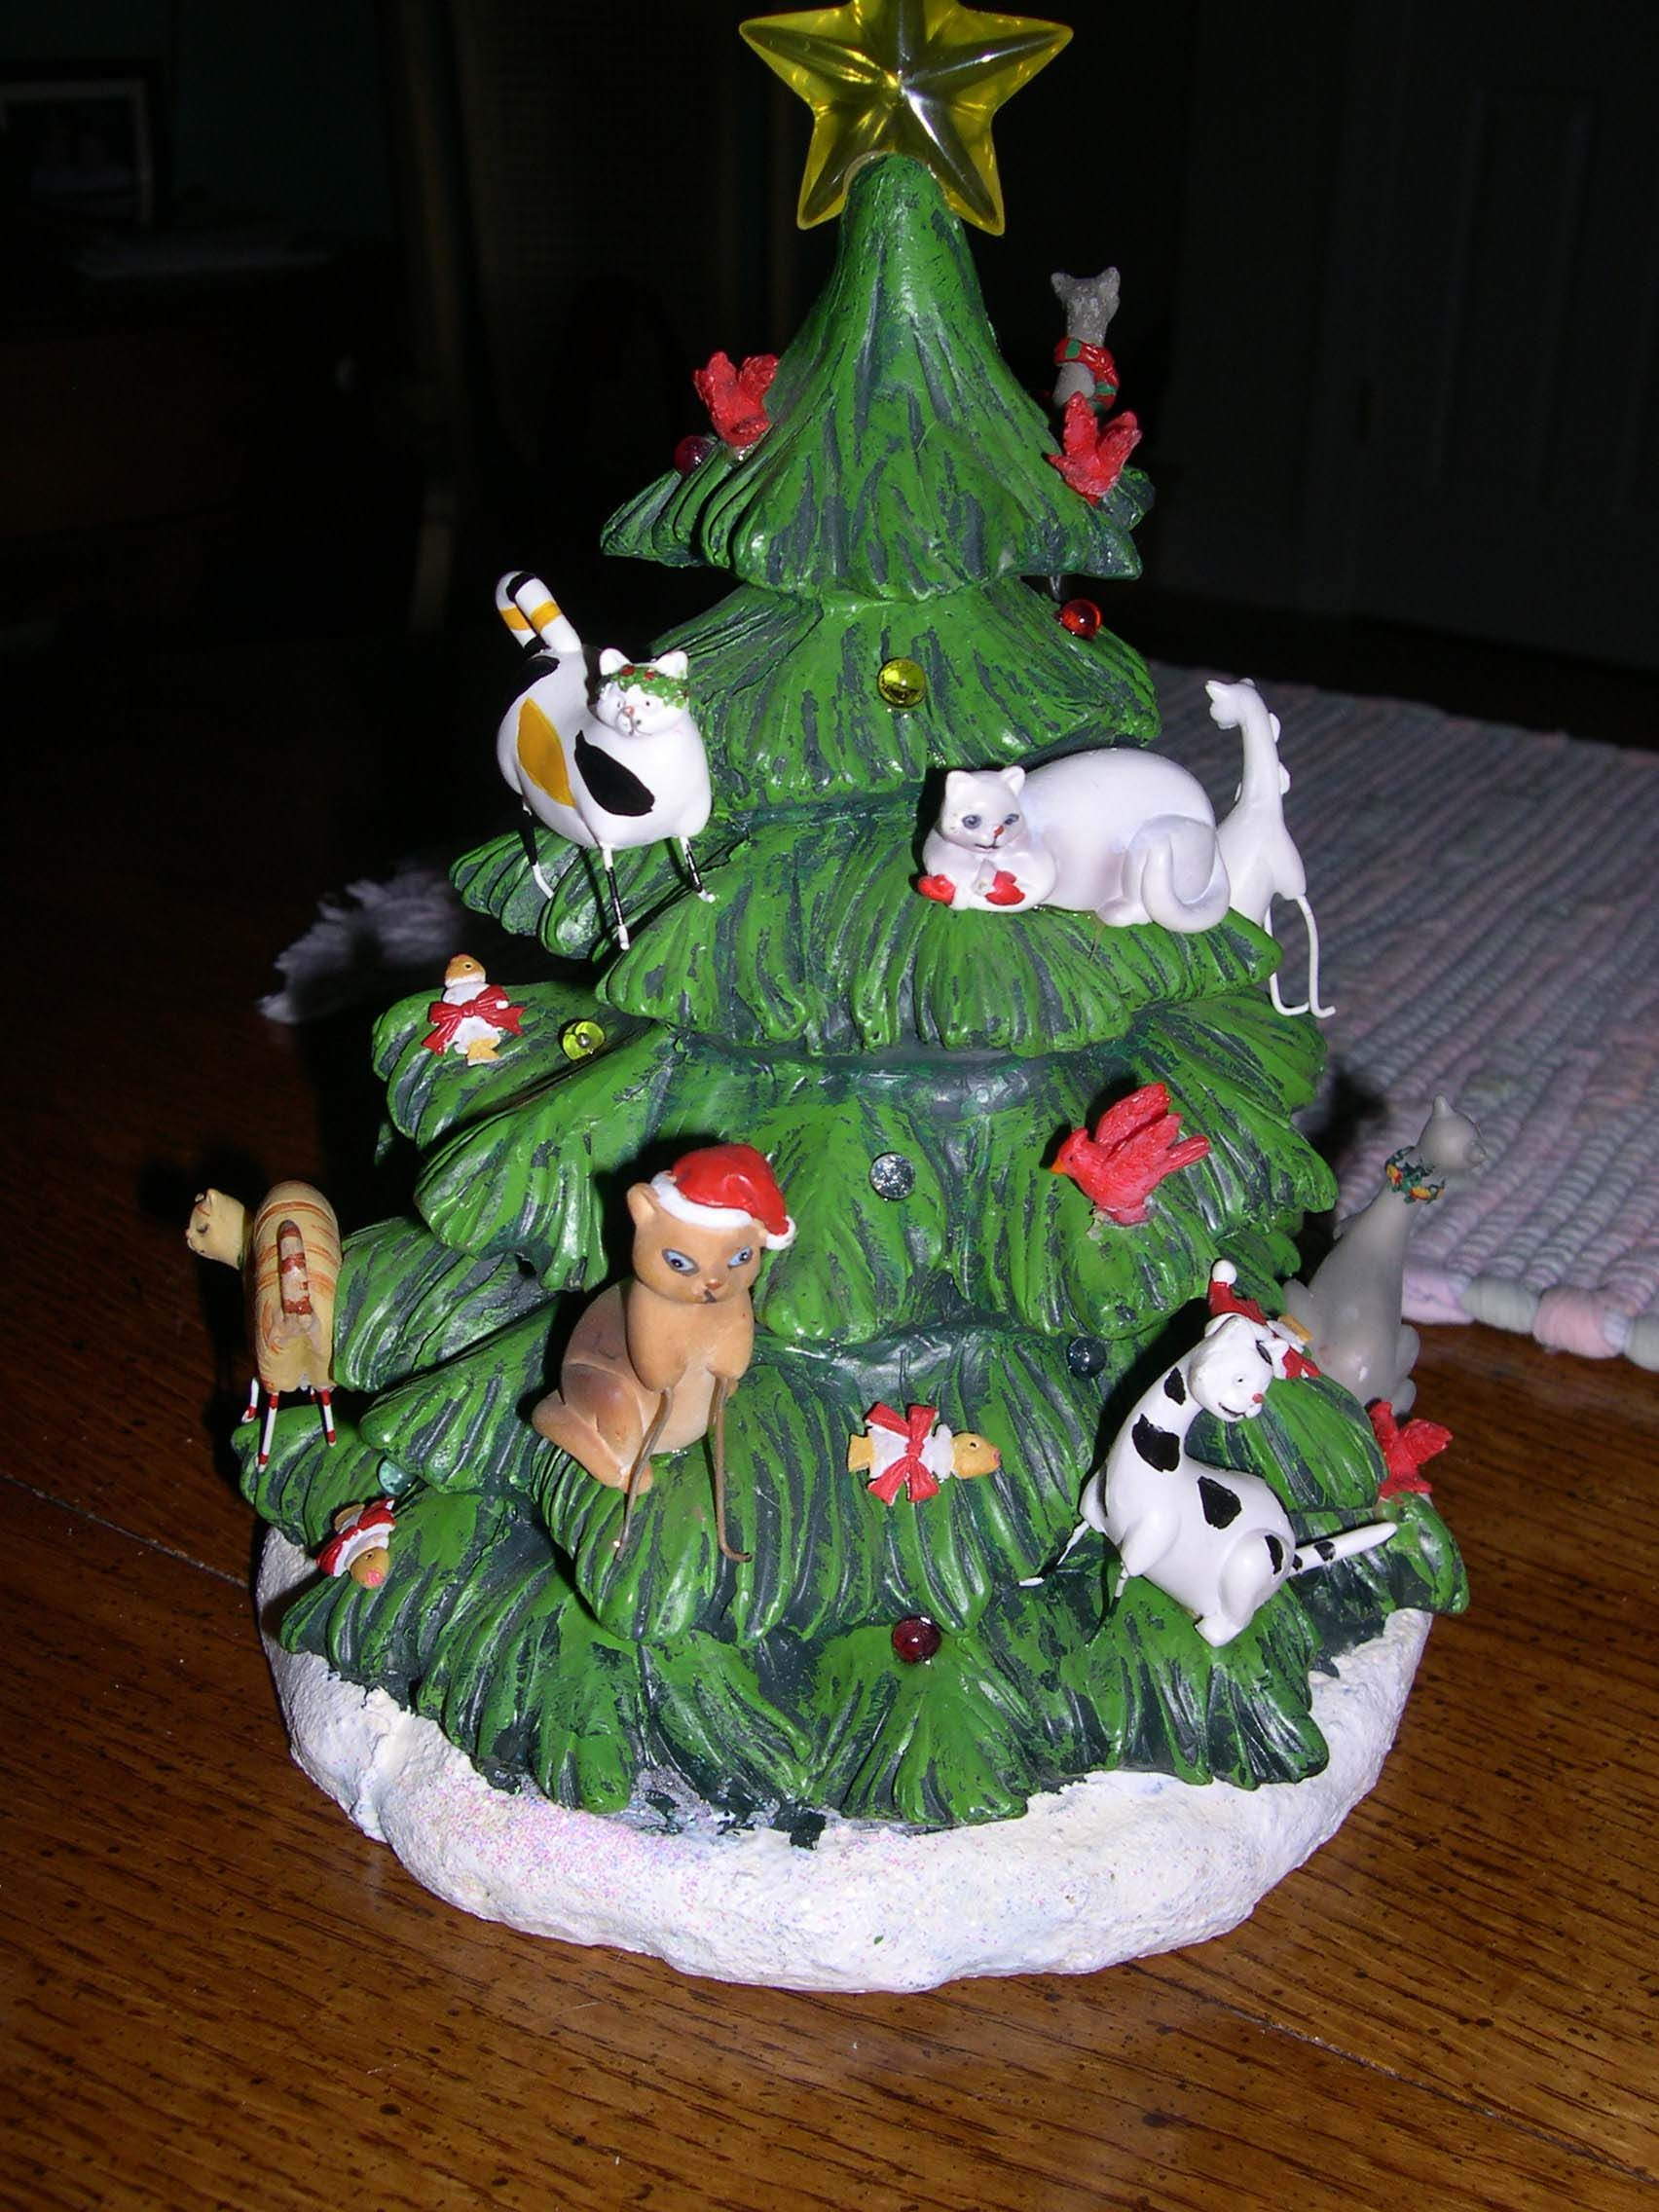 Ceramic Christmas tree with cat decoration. Christmas